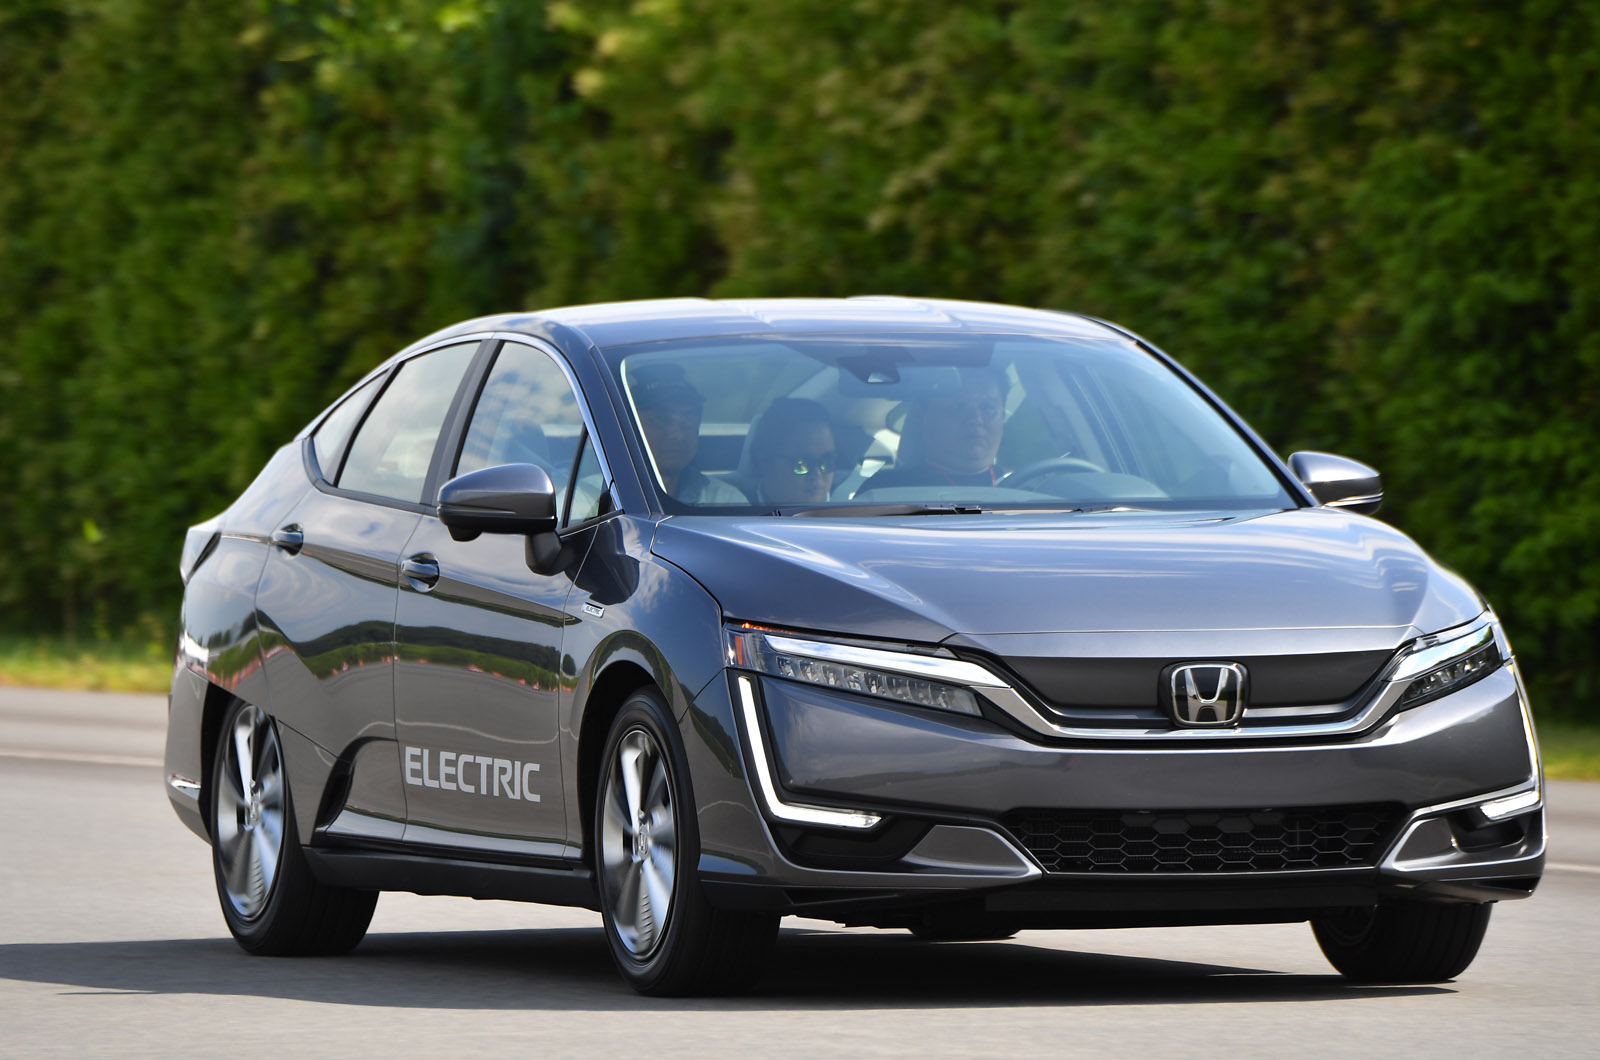 Honda Urban Ev Concept Due Next Month As First Of Two Electric